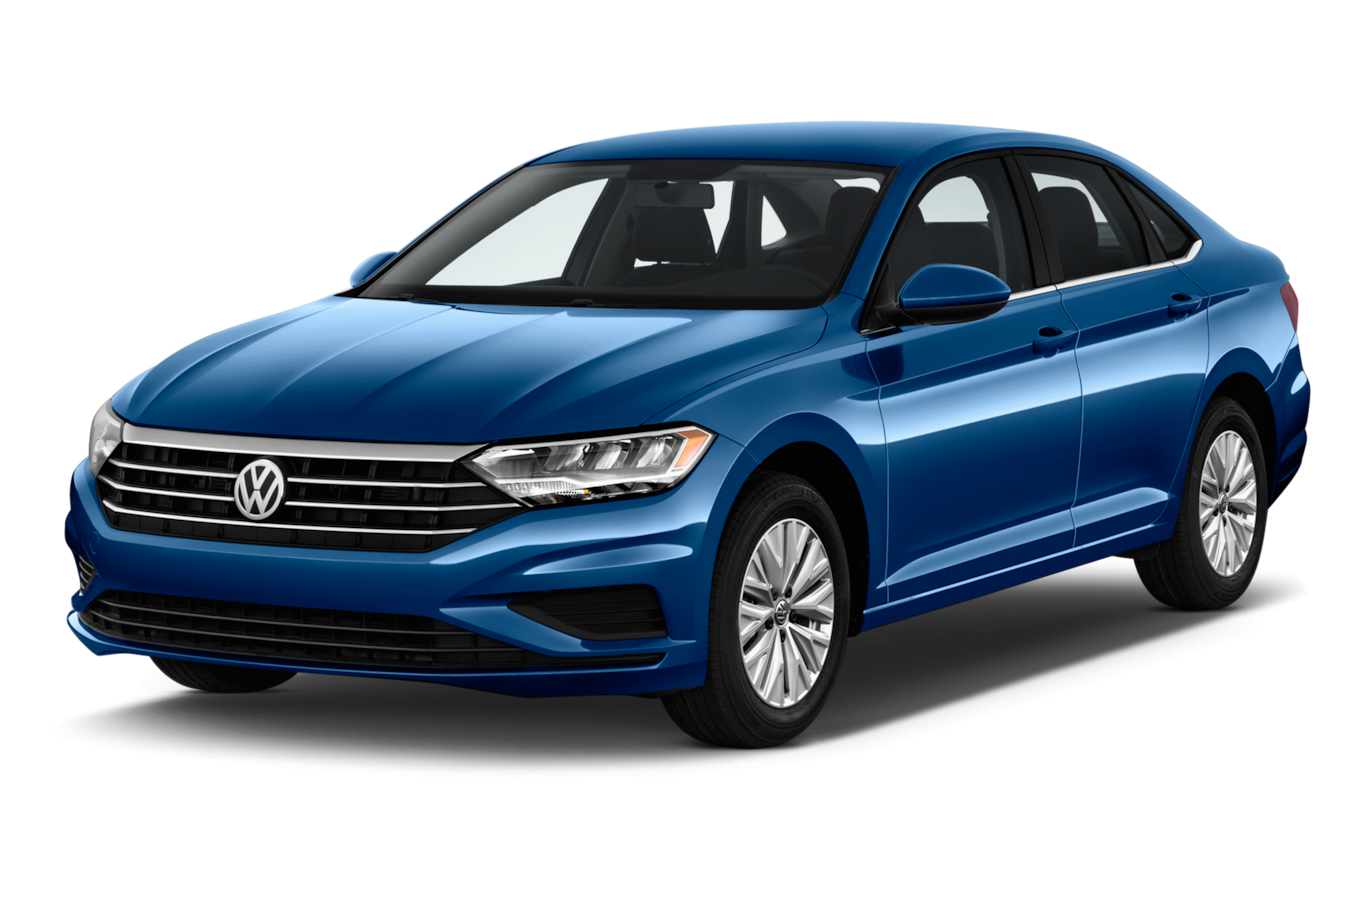 Volkswagen Jetta Reviews Prices New Used Jetta